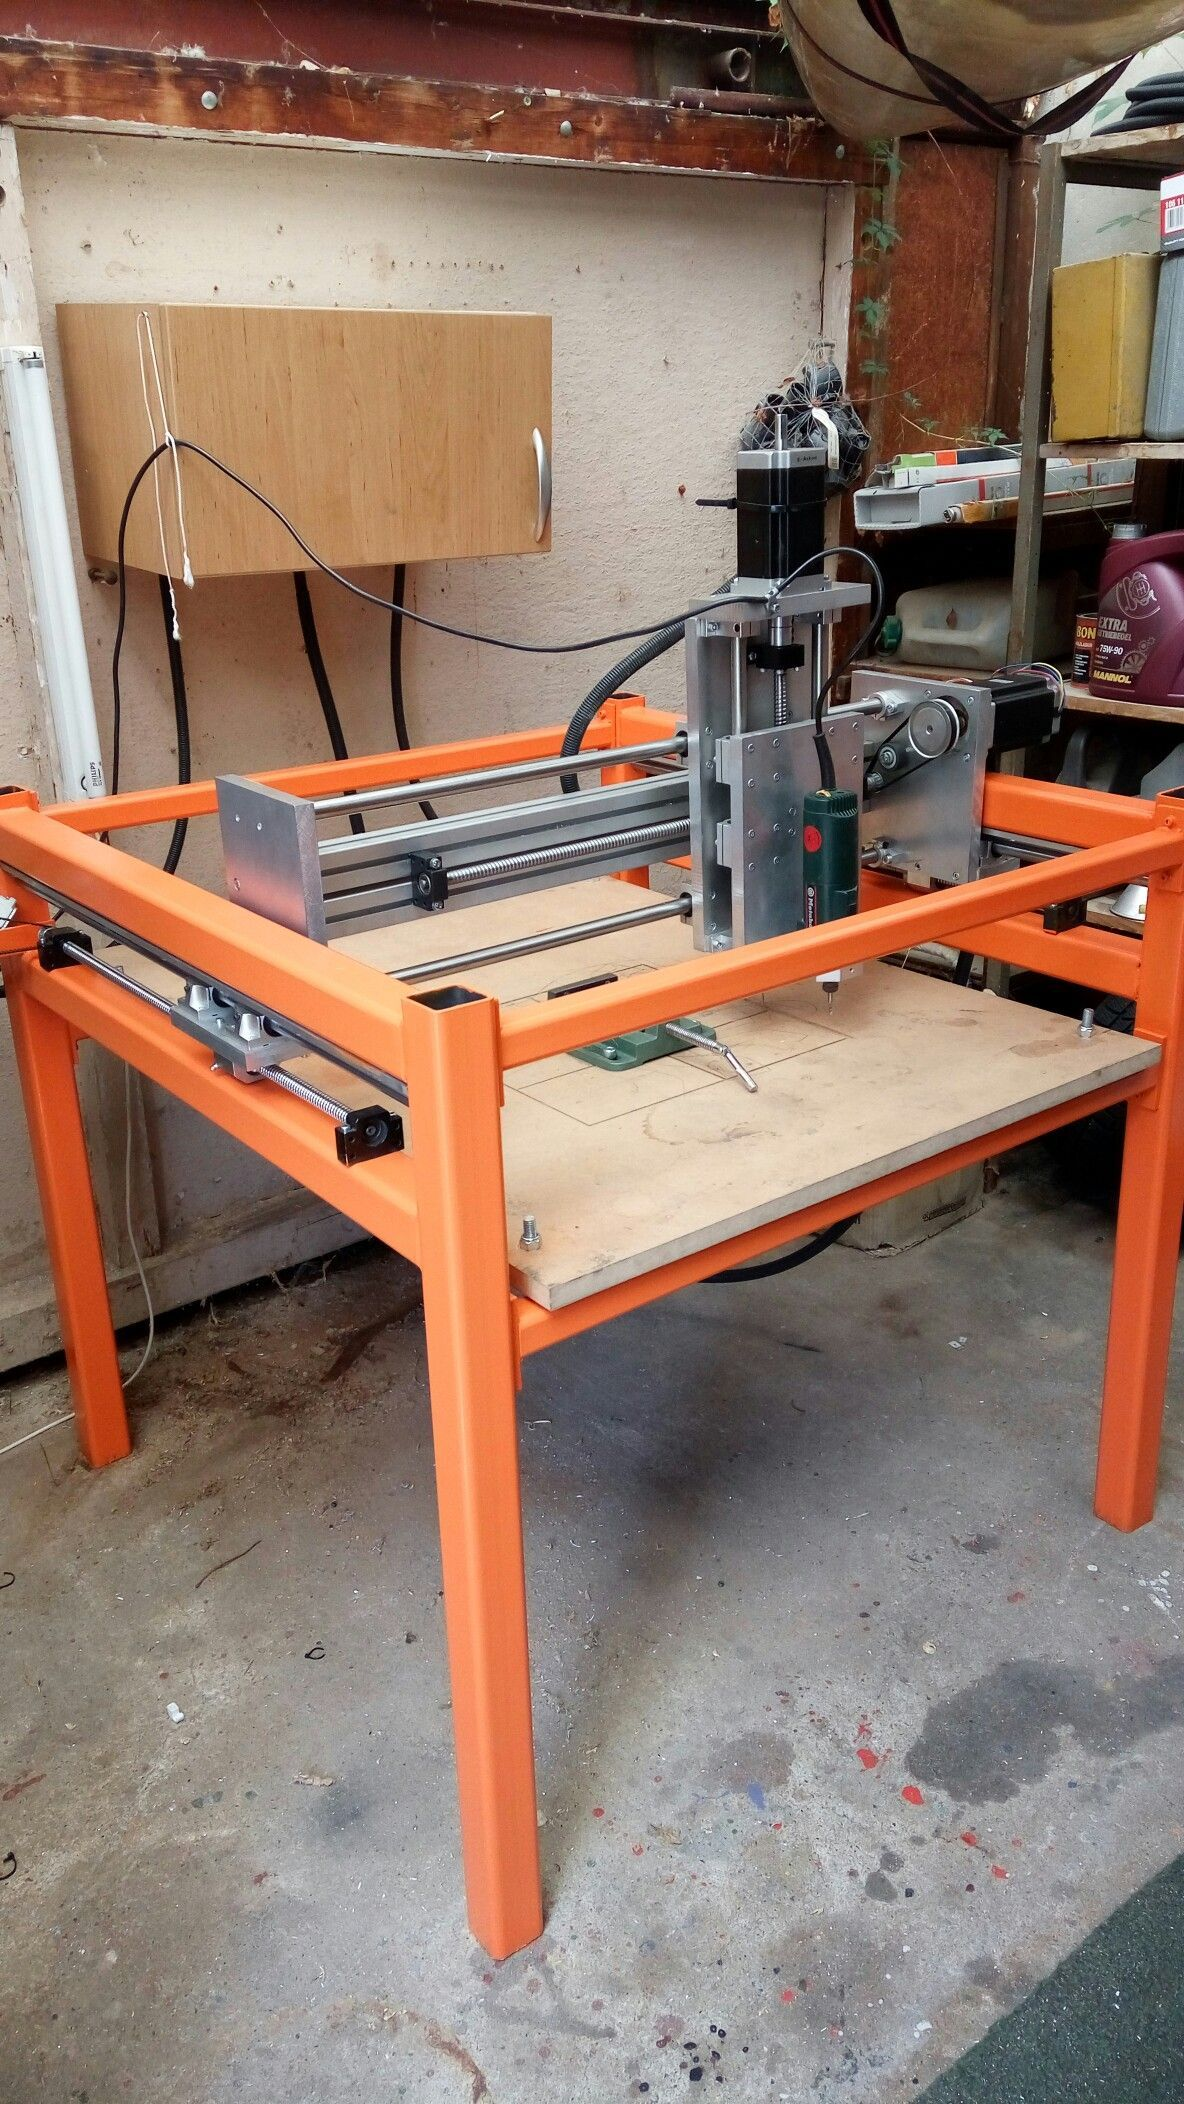 Pin by Richard Johnson on DIY projects Diy cnc router